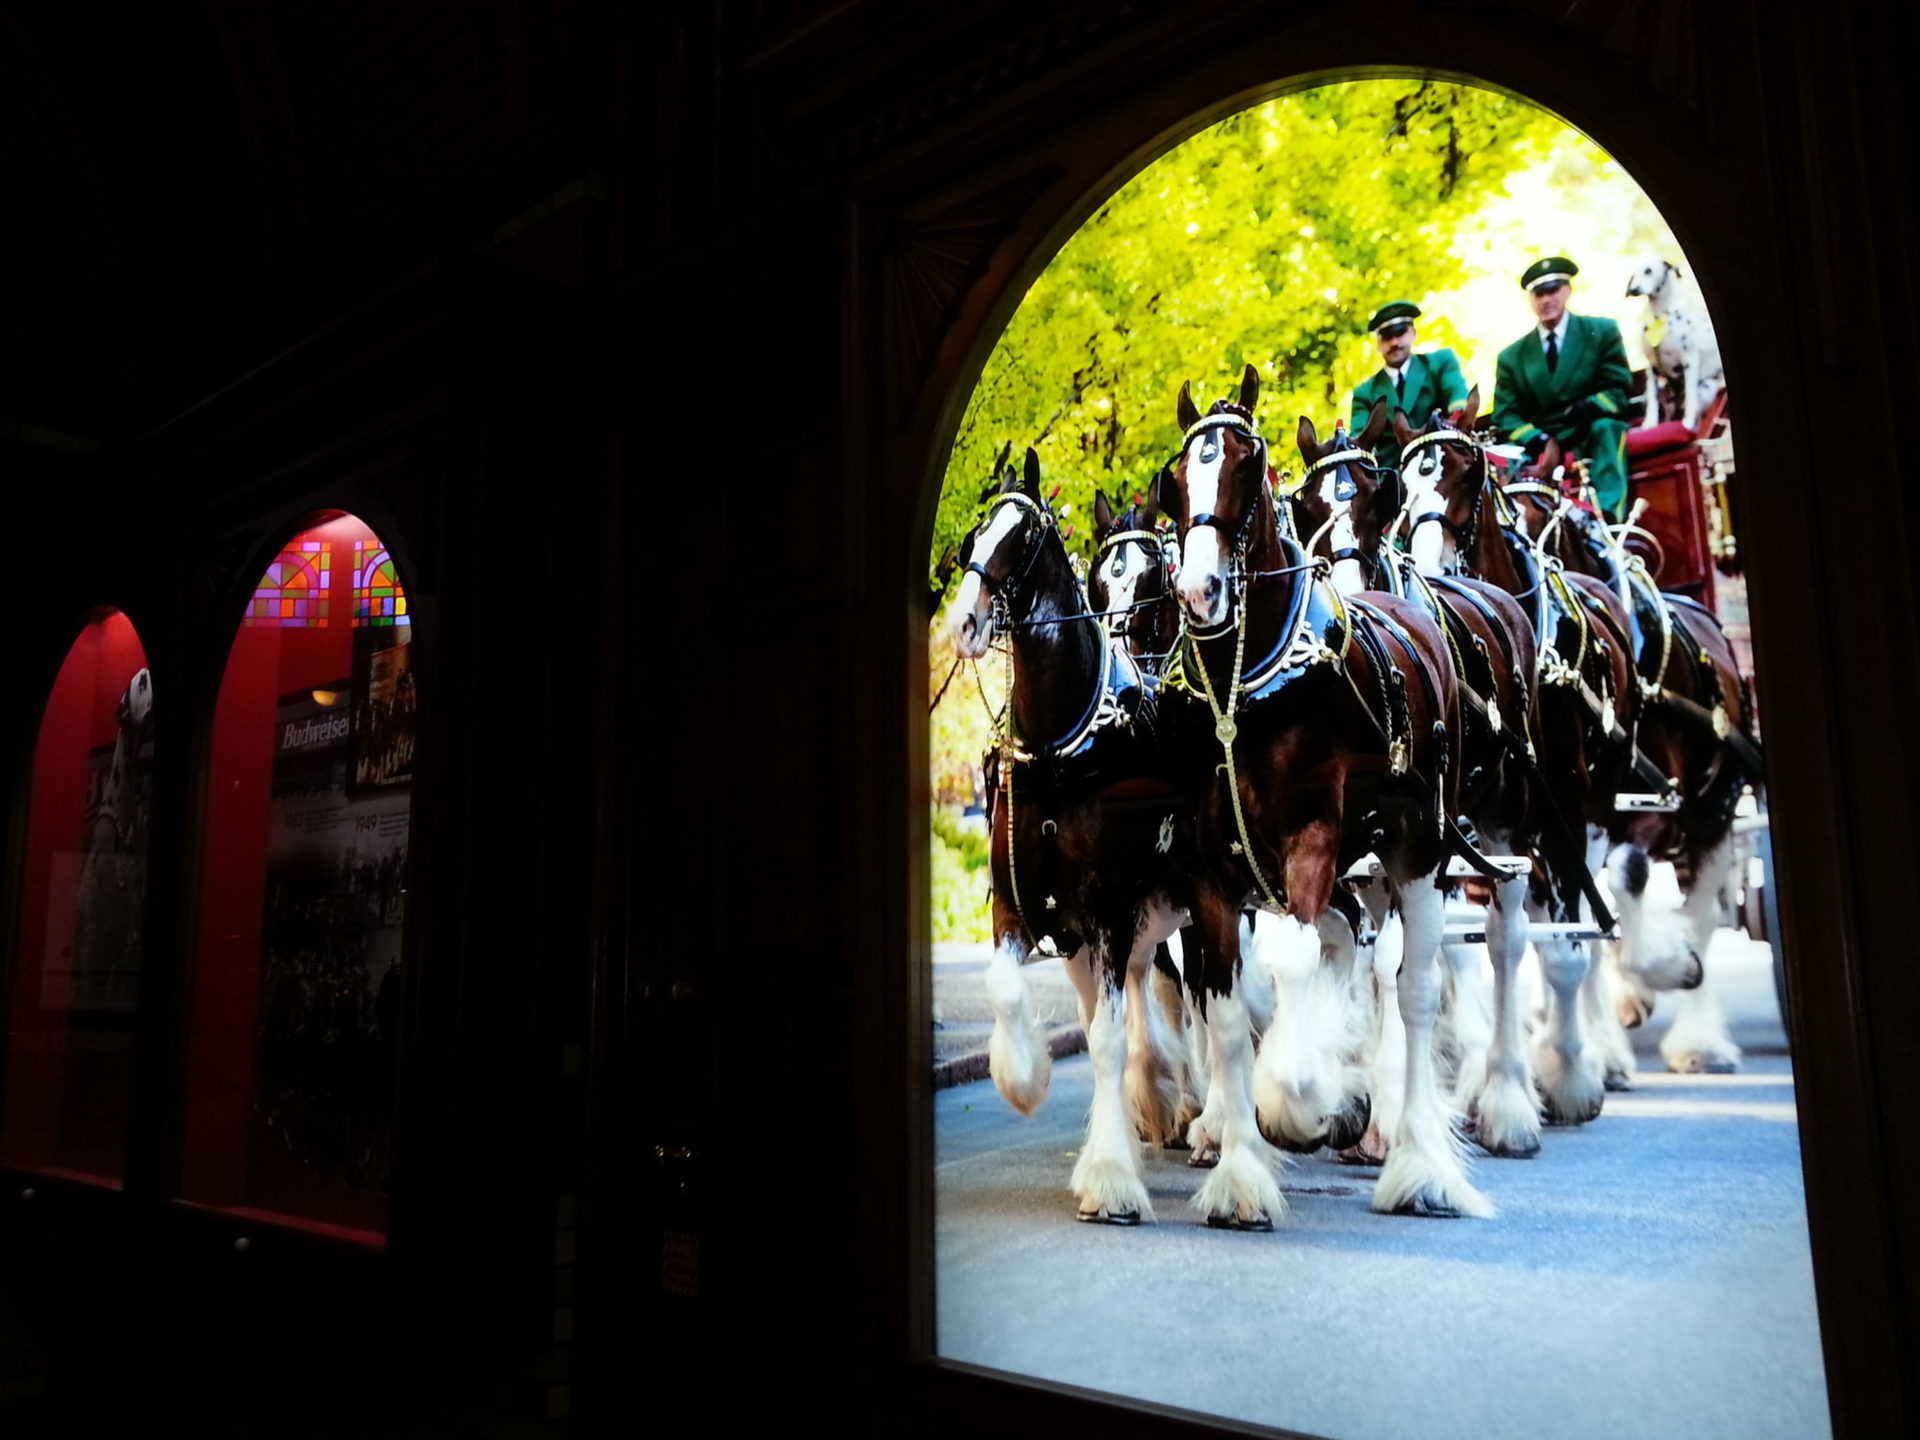 Budweiser Brewery Tour, St. Louis, MO - Clydesdales pulling wagon